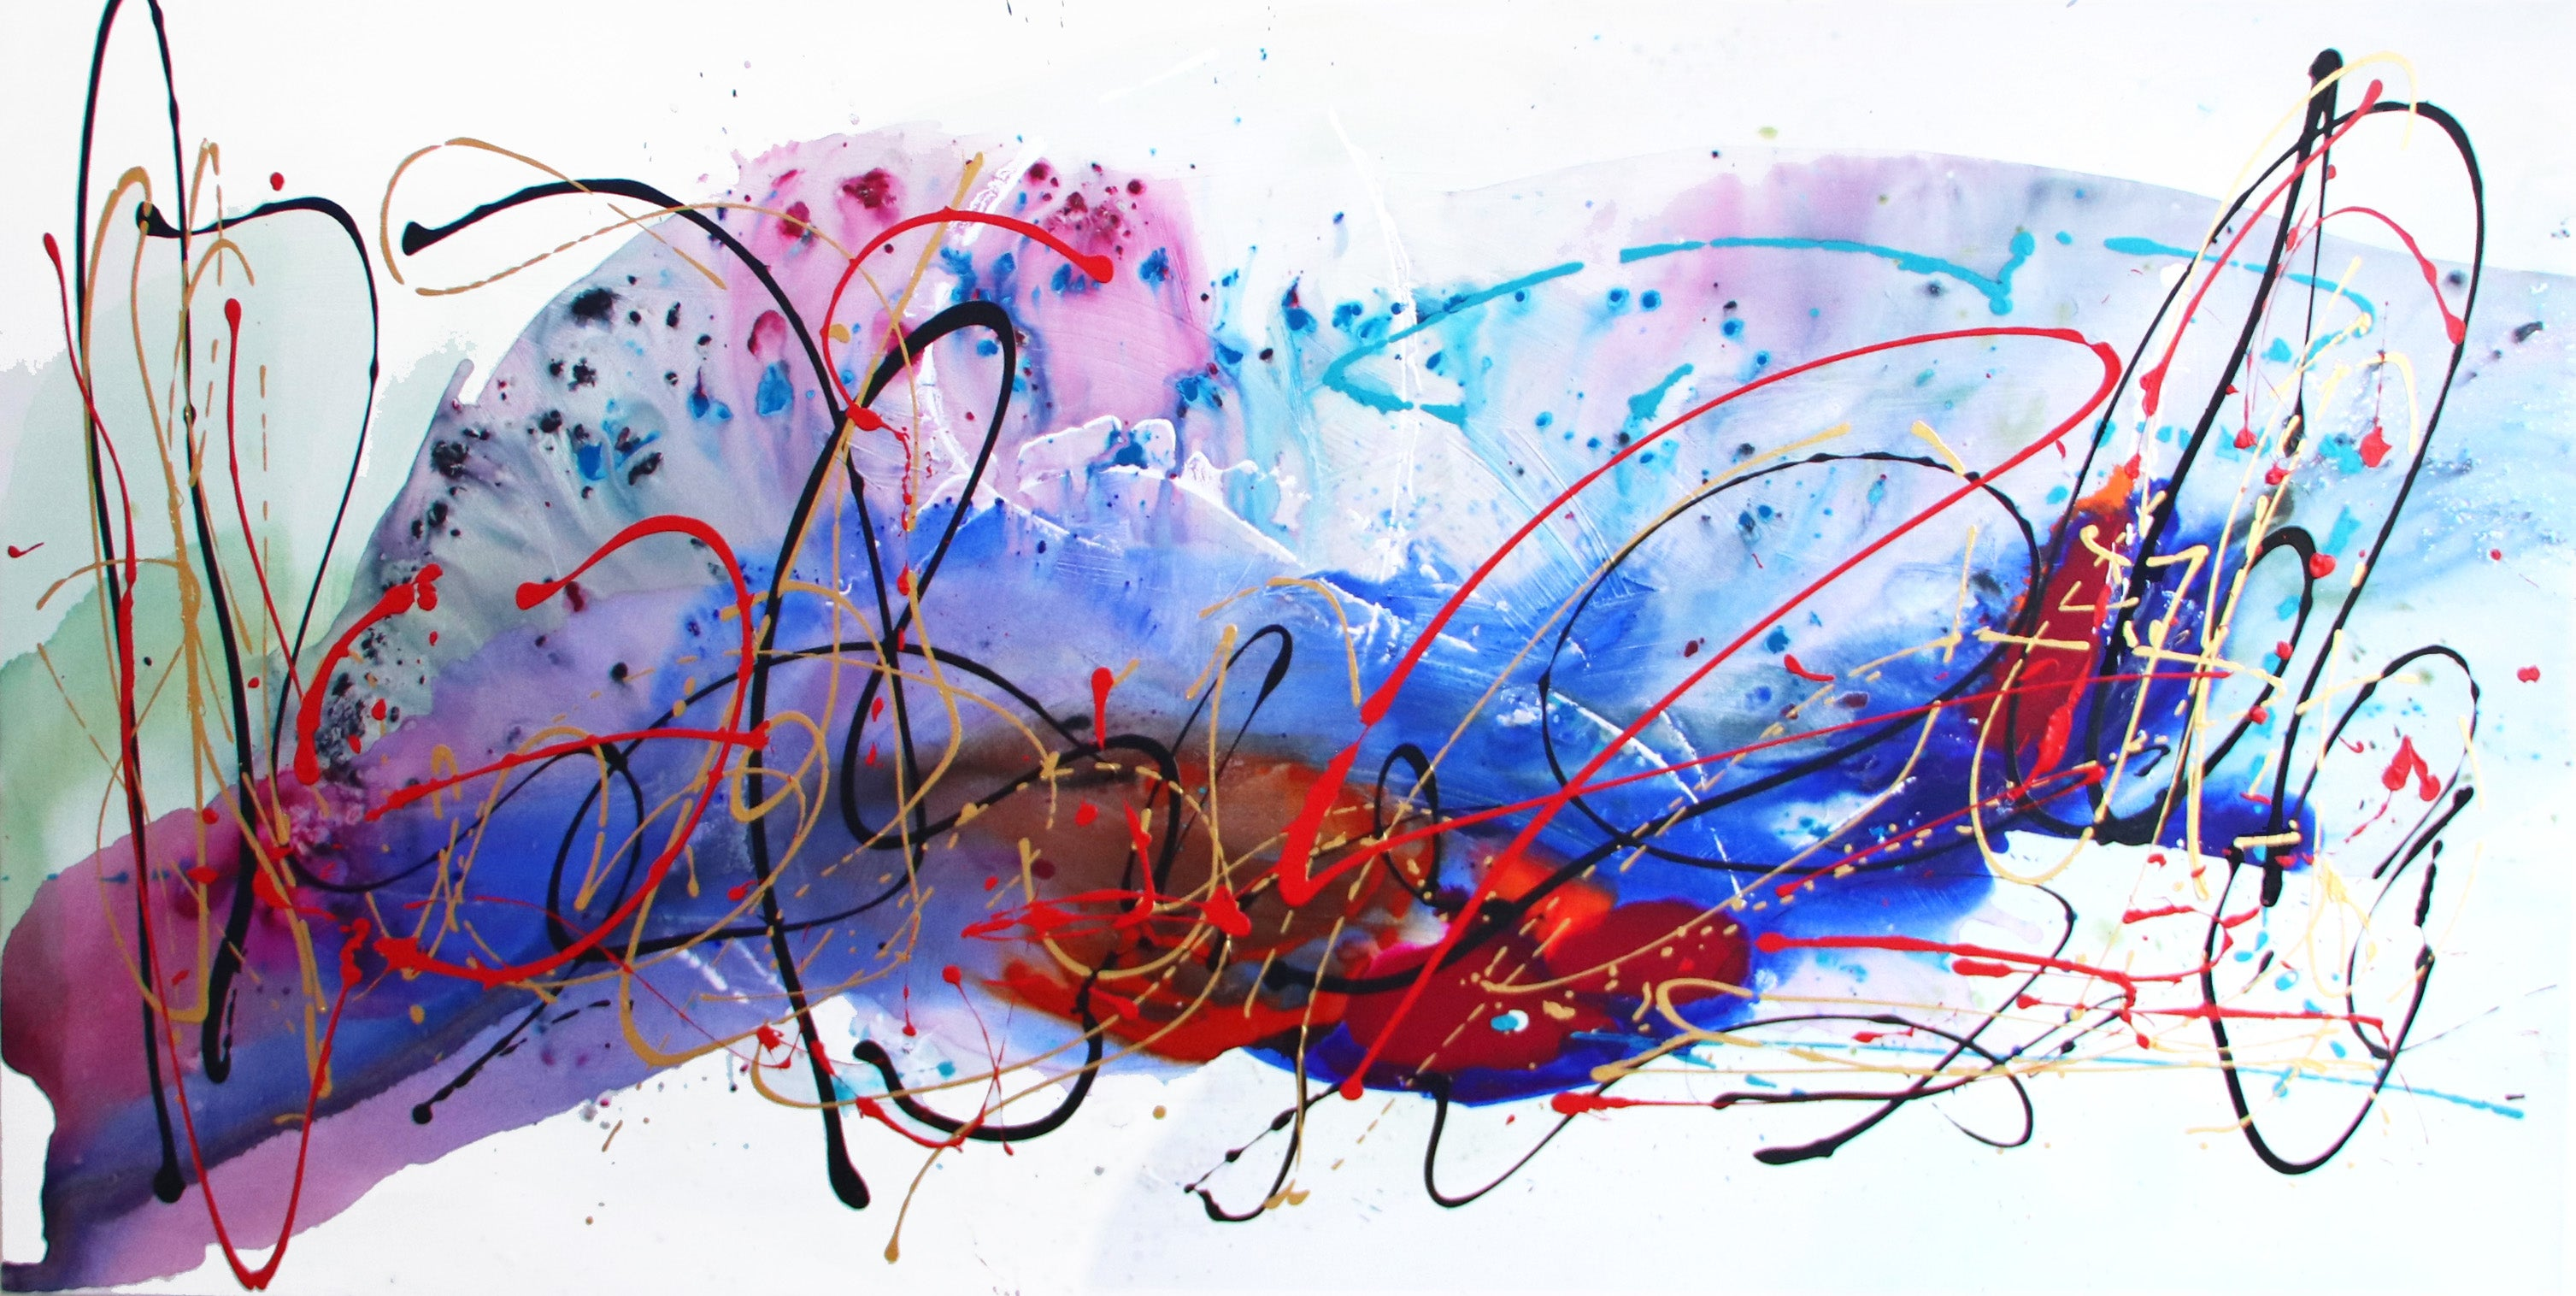 Energy - Oversized Energetic Colorful Original Artwork on Canvas